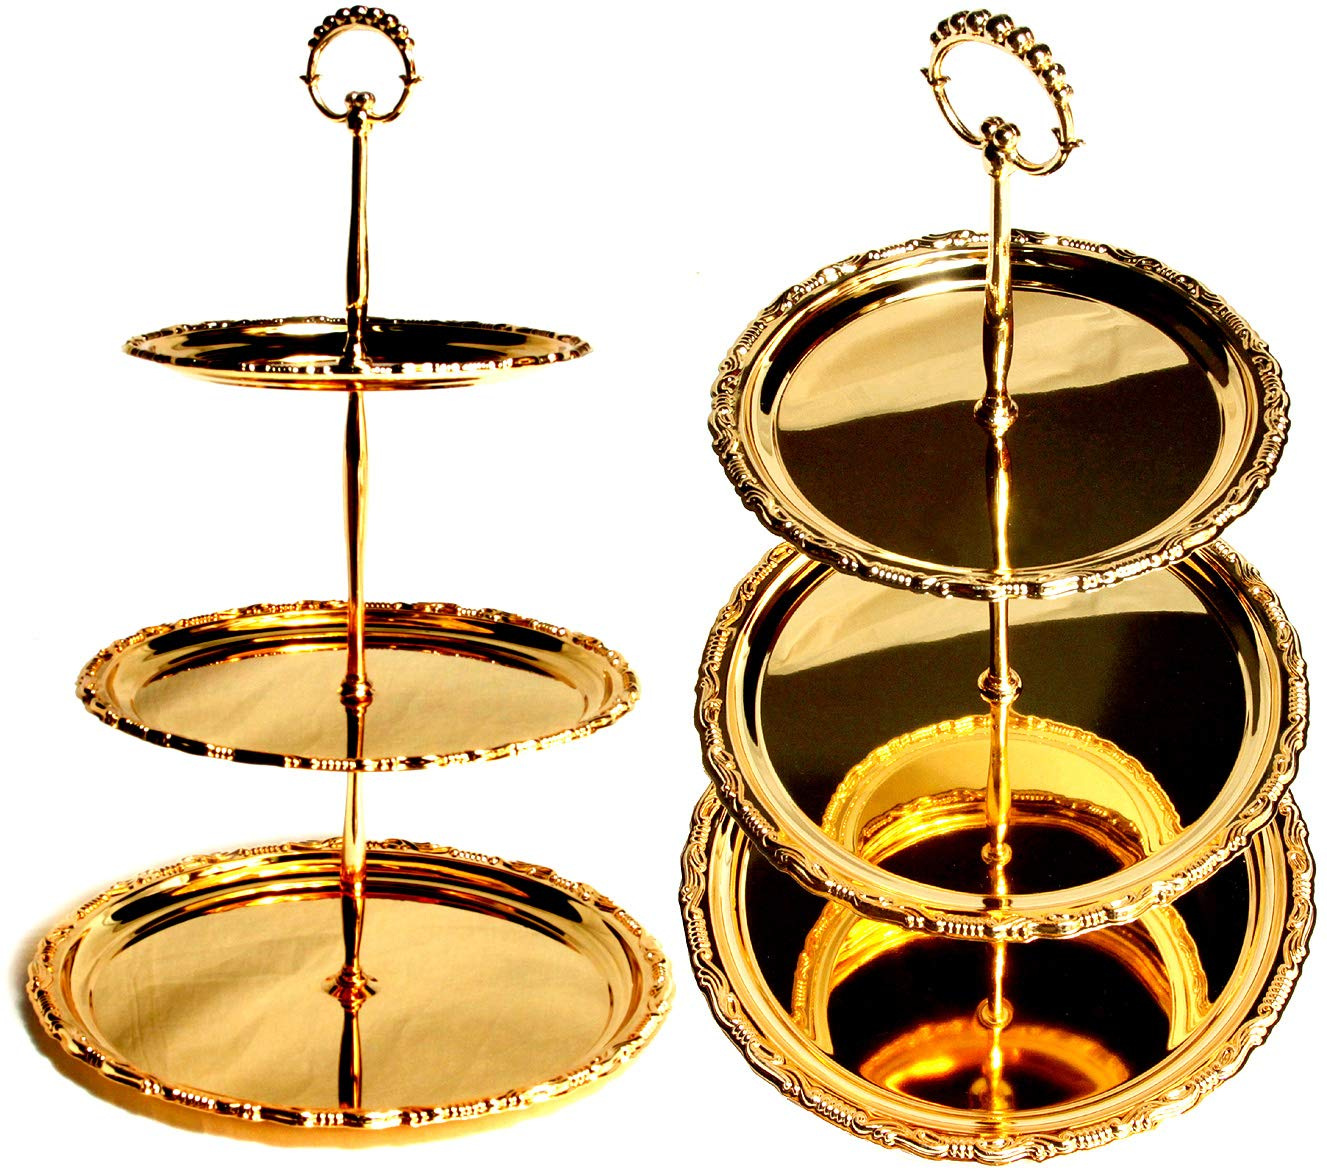 Maro Megastore (Pack of 2) L-12.1'' M-10'' S-8.1'' Three Tiered Iron Gold Serving Stand Serving Tray For Parties Round Platter Cupcakes Fruits Dessert Tea Cake Pop Stand Wedding Buffet TNEG245L3t-2PK by Maro Megastore